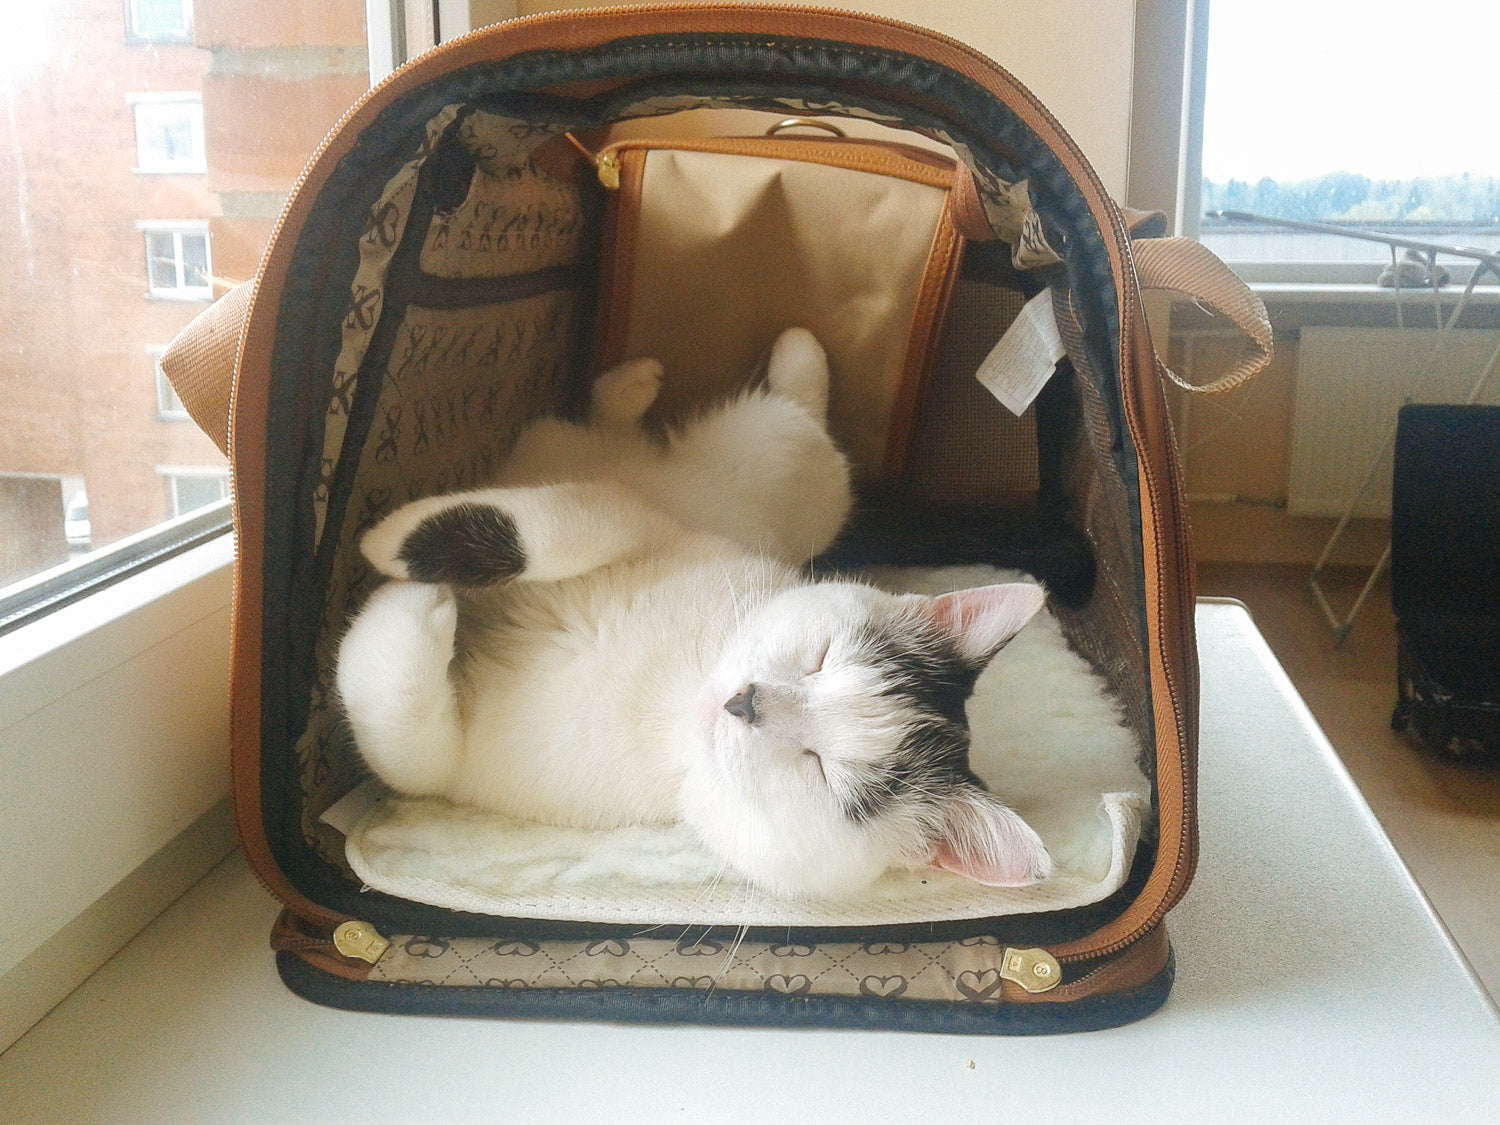 3 Simple Tips For Traveling With Your Cat